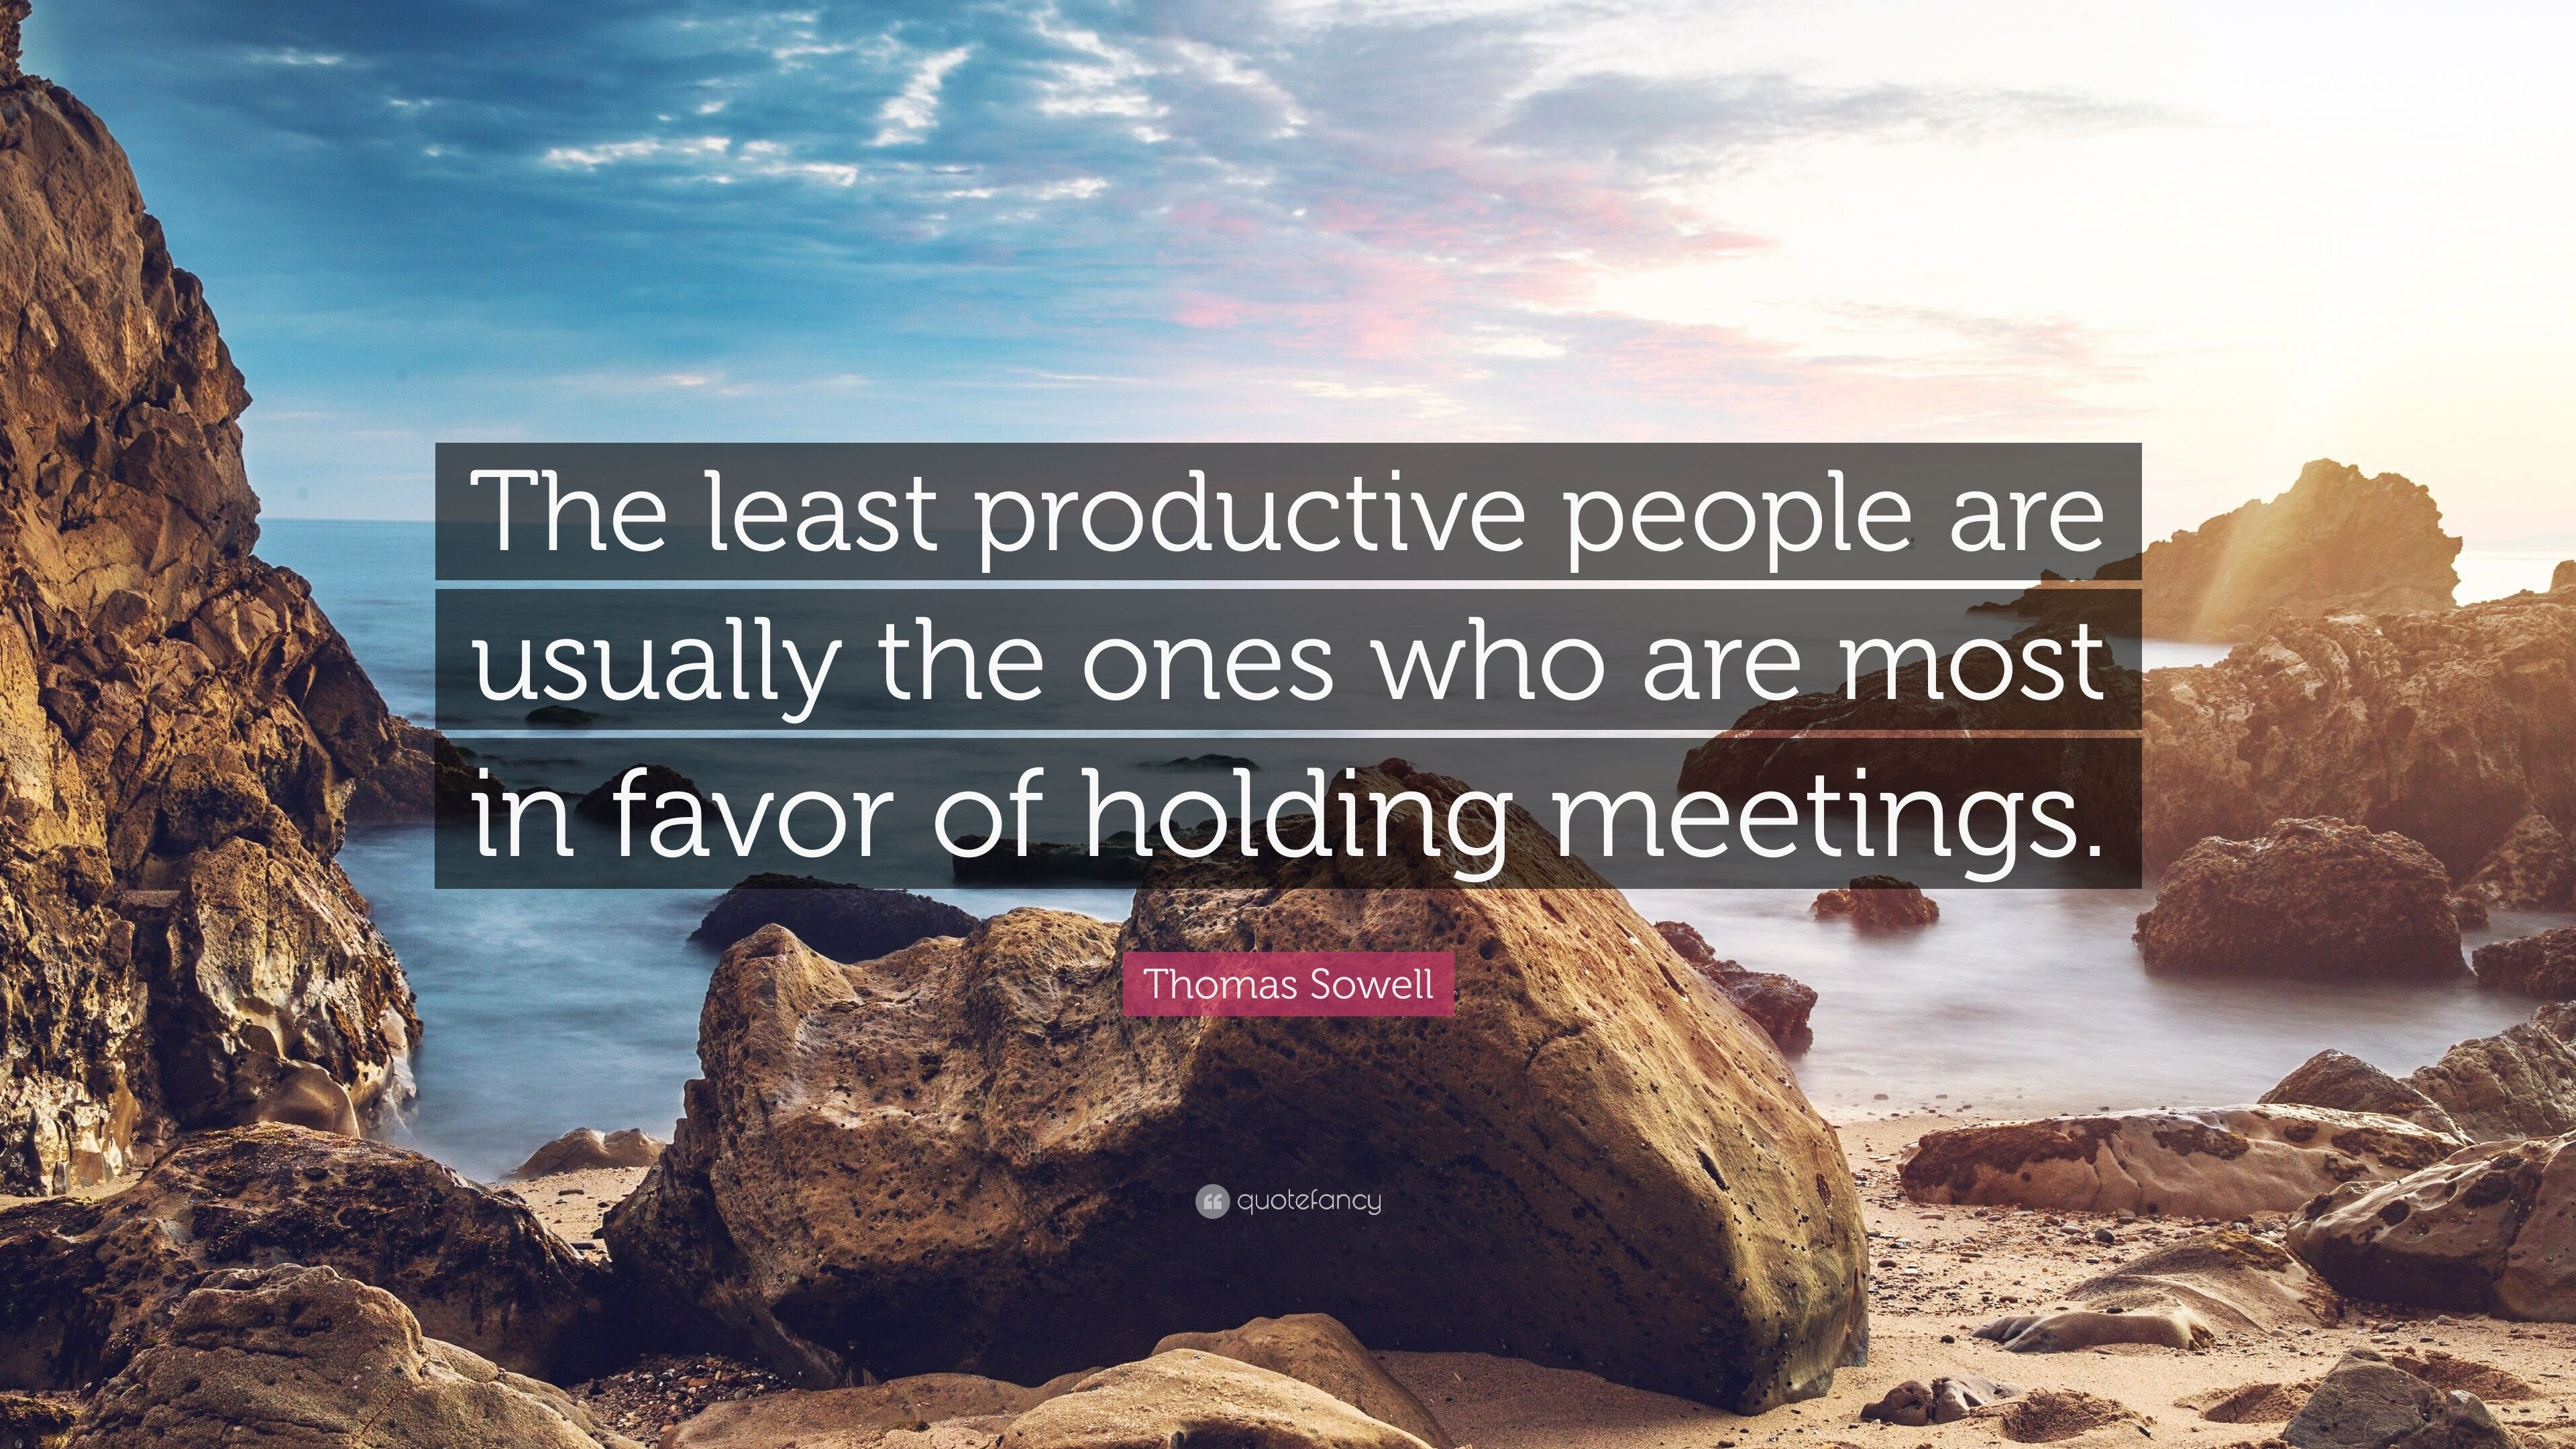 2159961-Thomas-Sowell-Quote-The-least-productive-people-are-usually-the